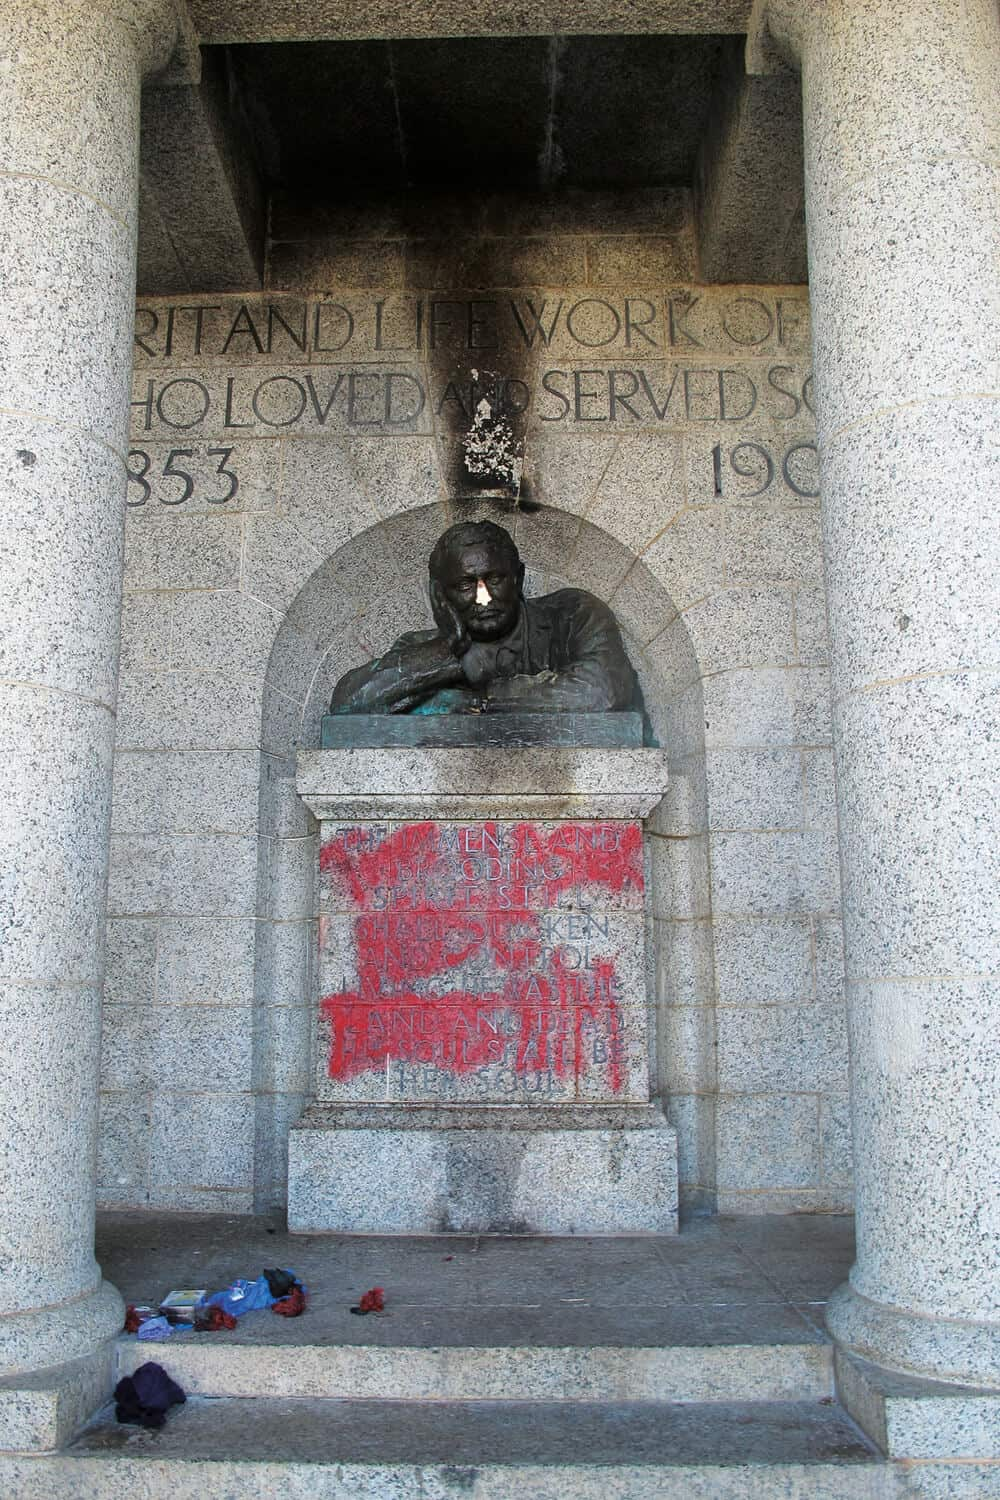 """The Master's Nose Betrays Him"" read graffiti anderneath the defaced Rhodes Memorial statue in Cape Town. Photograph: Kim Gurney"